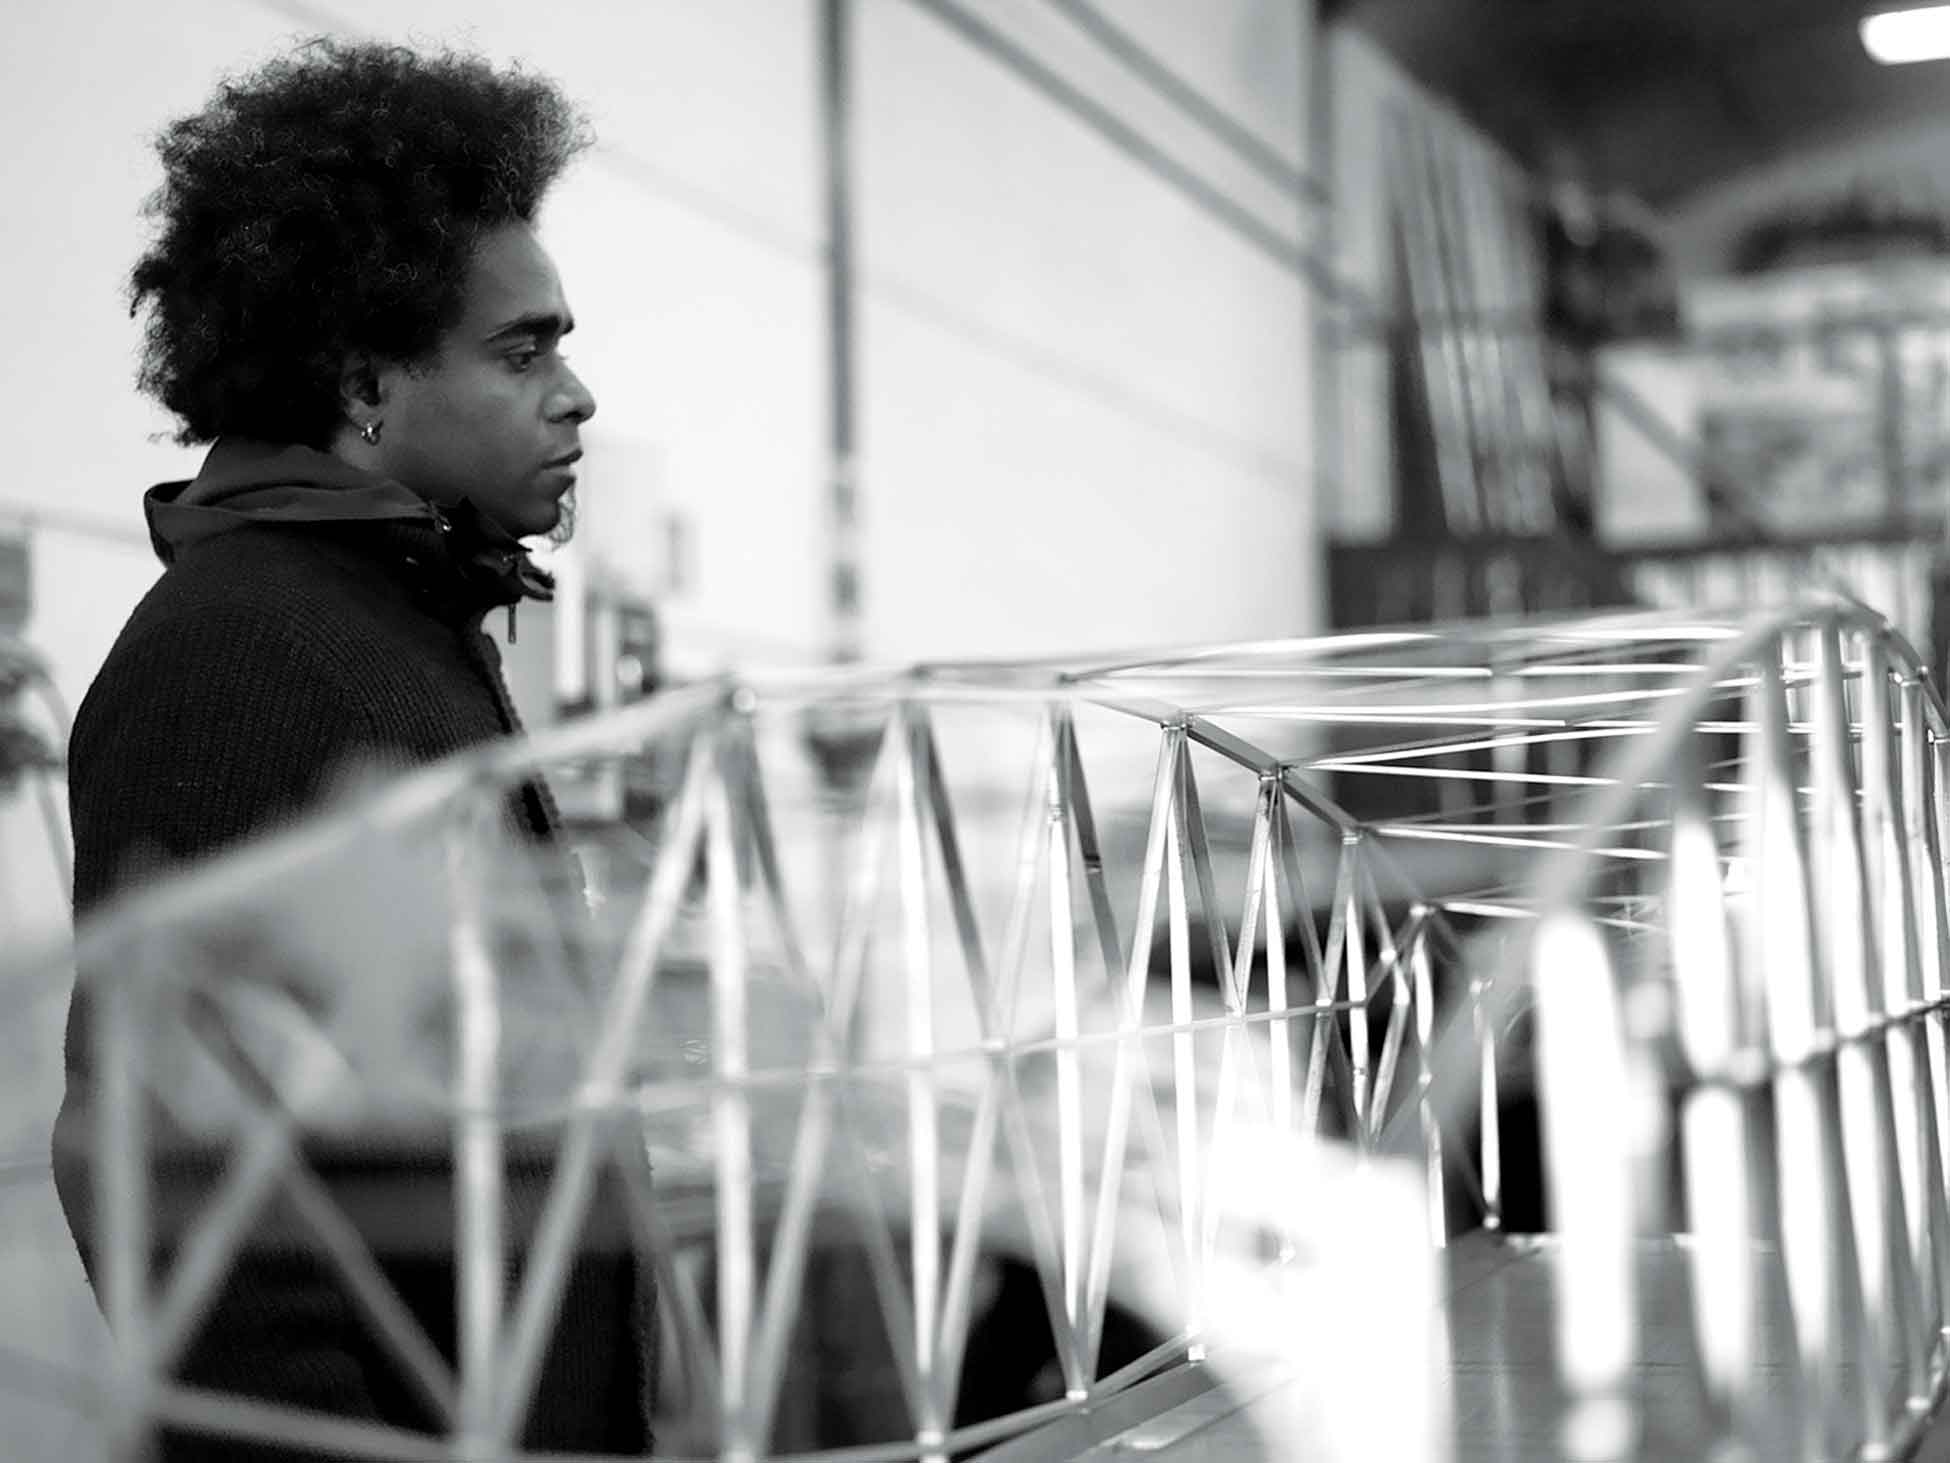 Alexandre Arrechea in his studio. Photo: Rafael García Sánchez.All images are courtesy of the artist and Magnan Metz Gallery.